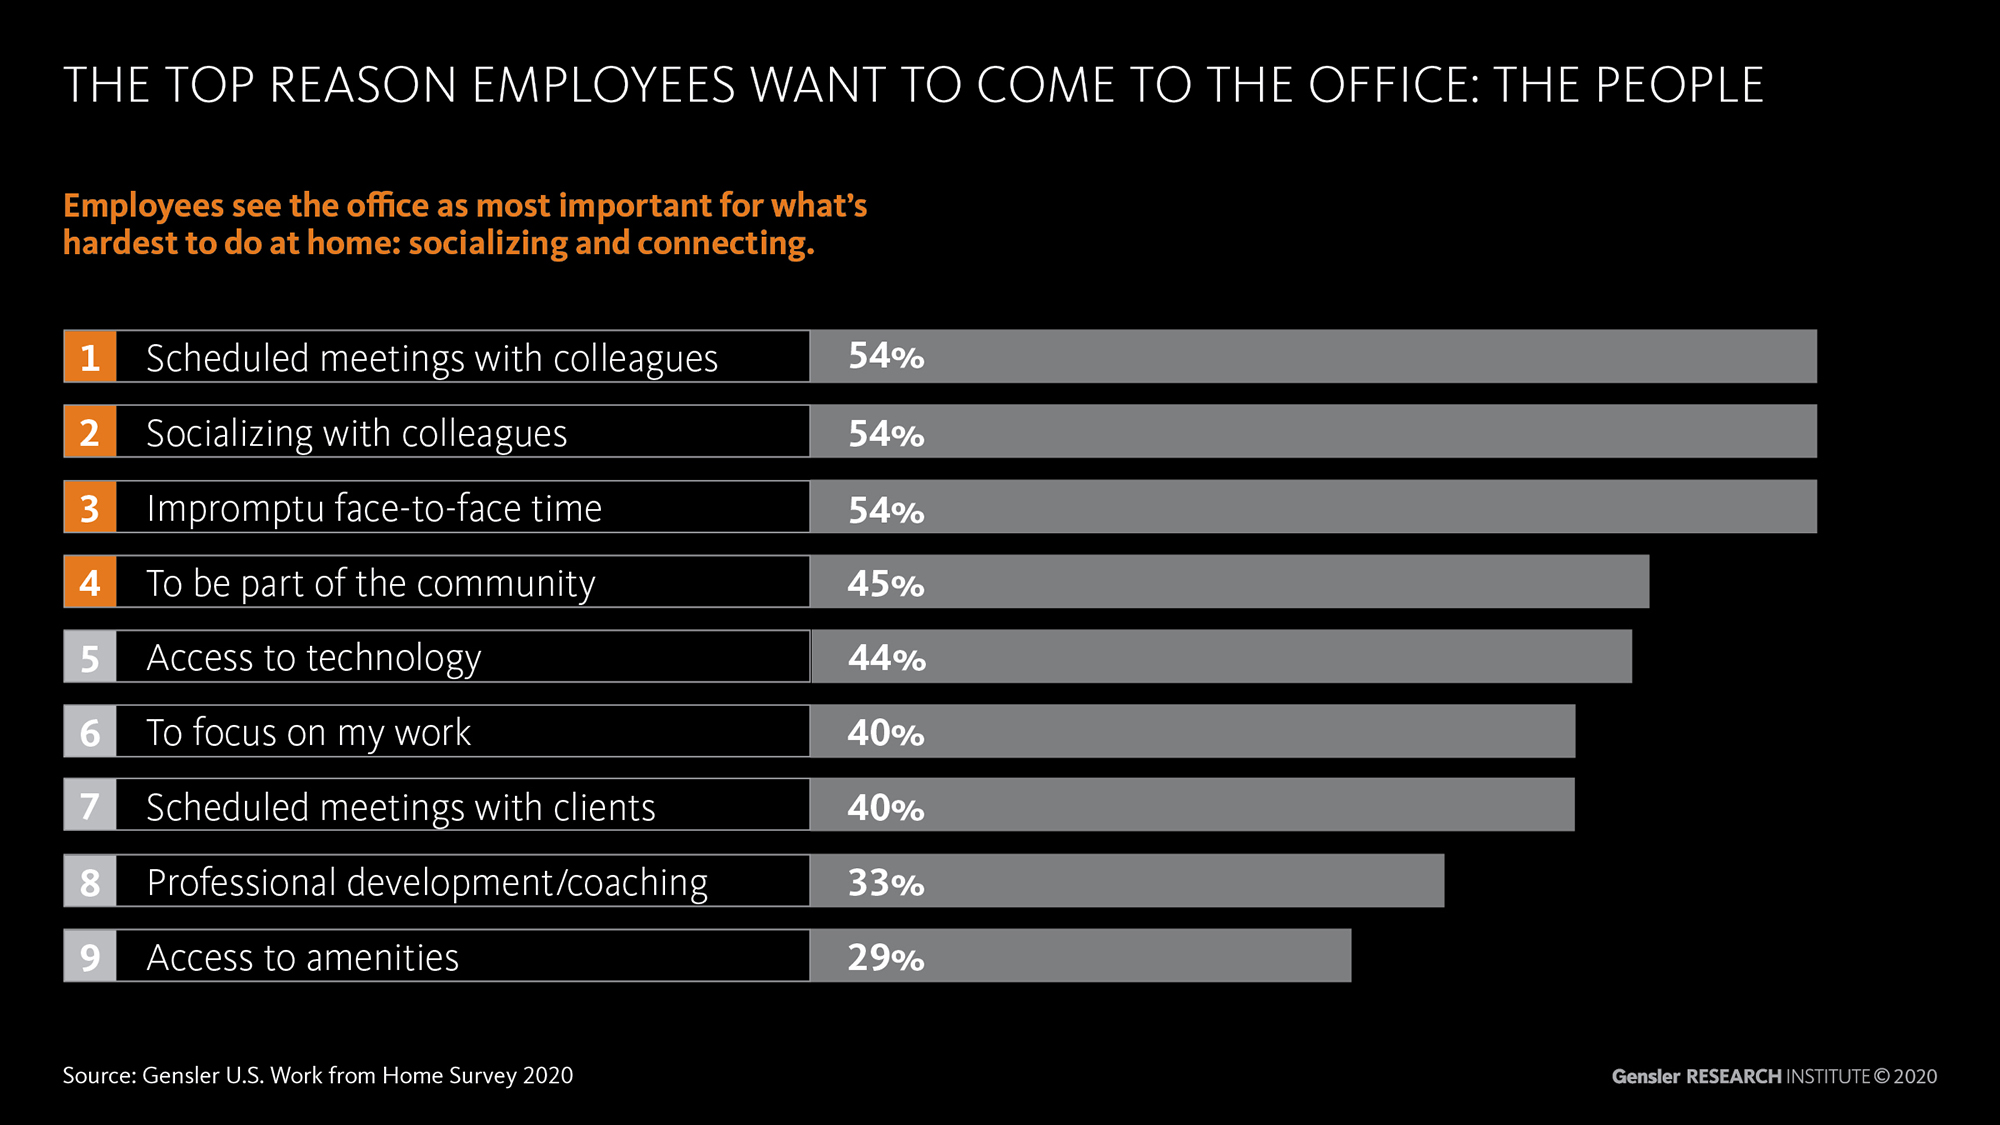 Employees reasoning for returning to the office